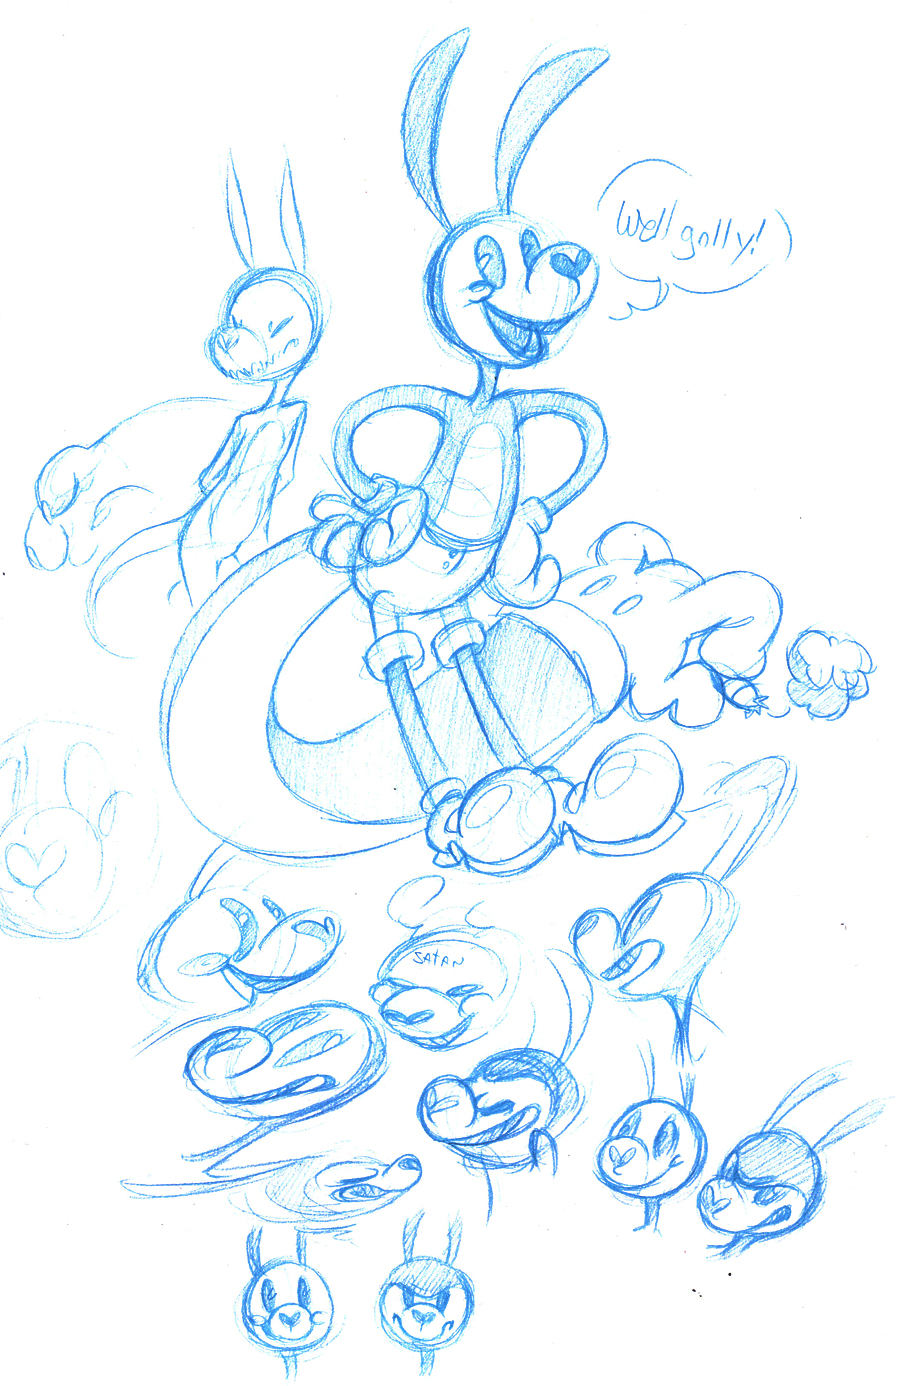 WHY ARE BLUE PENCILS SO GREAT GOSH by R-WOLFE